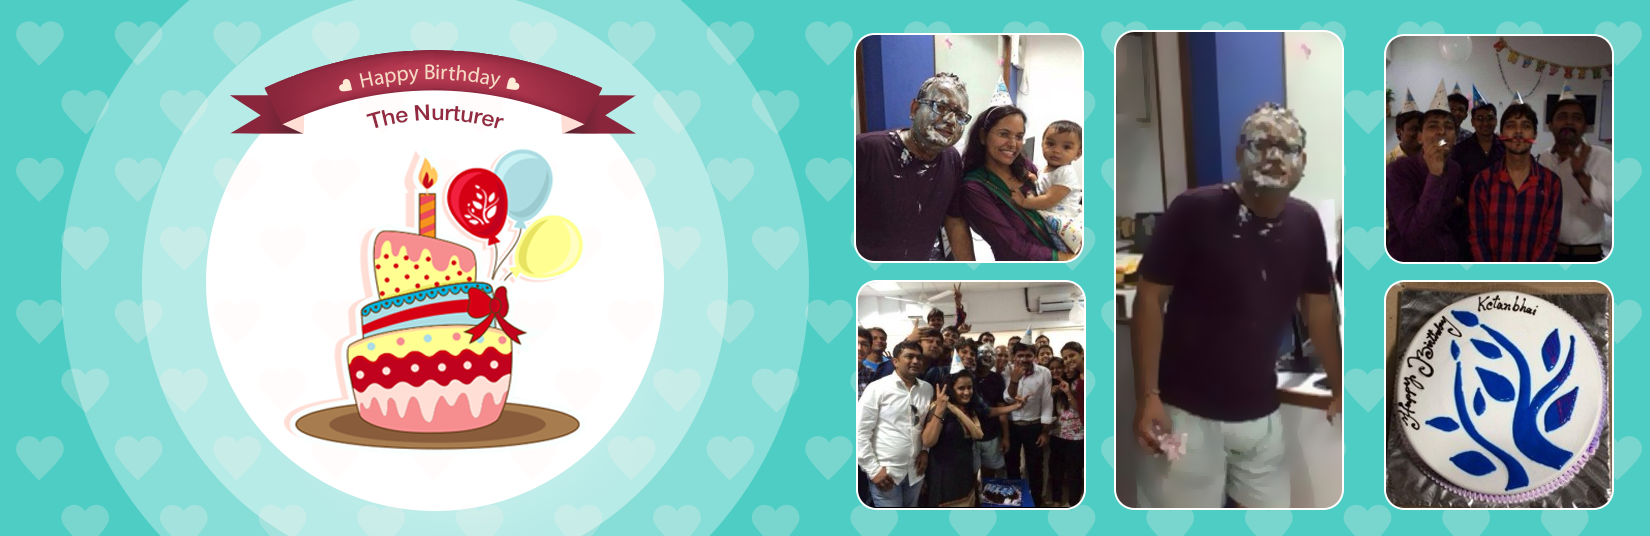 Team LetsNurture Celebrates Birthday of The Nurturer In A Fun-filled Way!